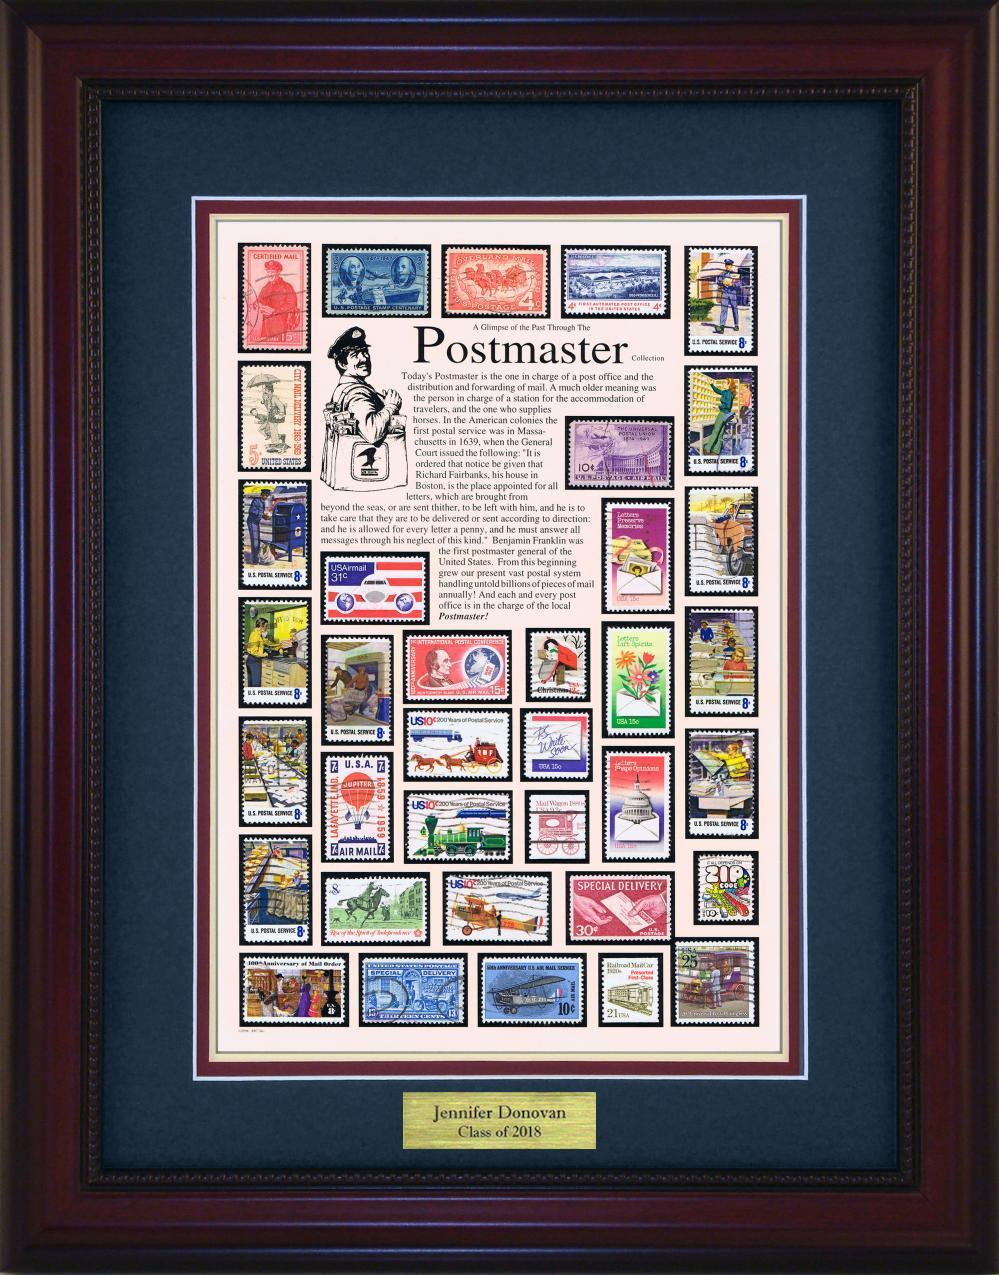 Postmaster - Personalized Unique Framed Gift